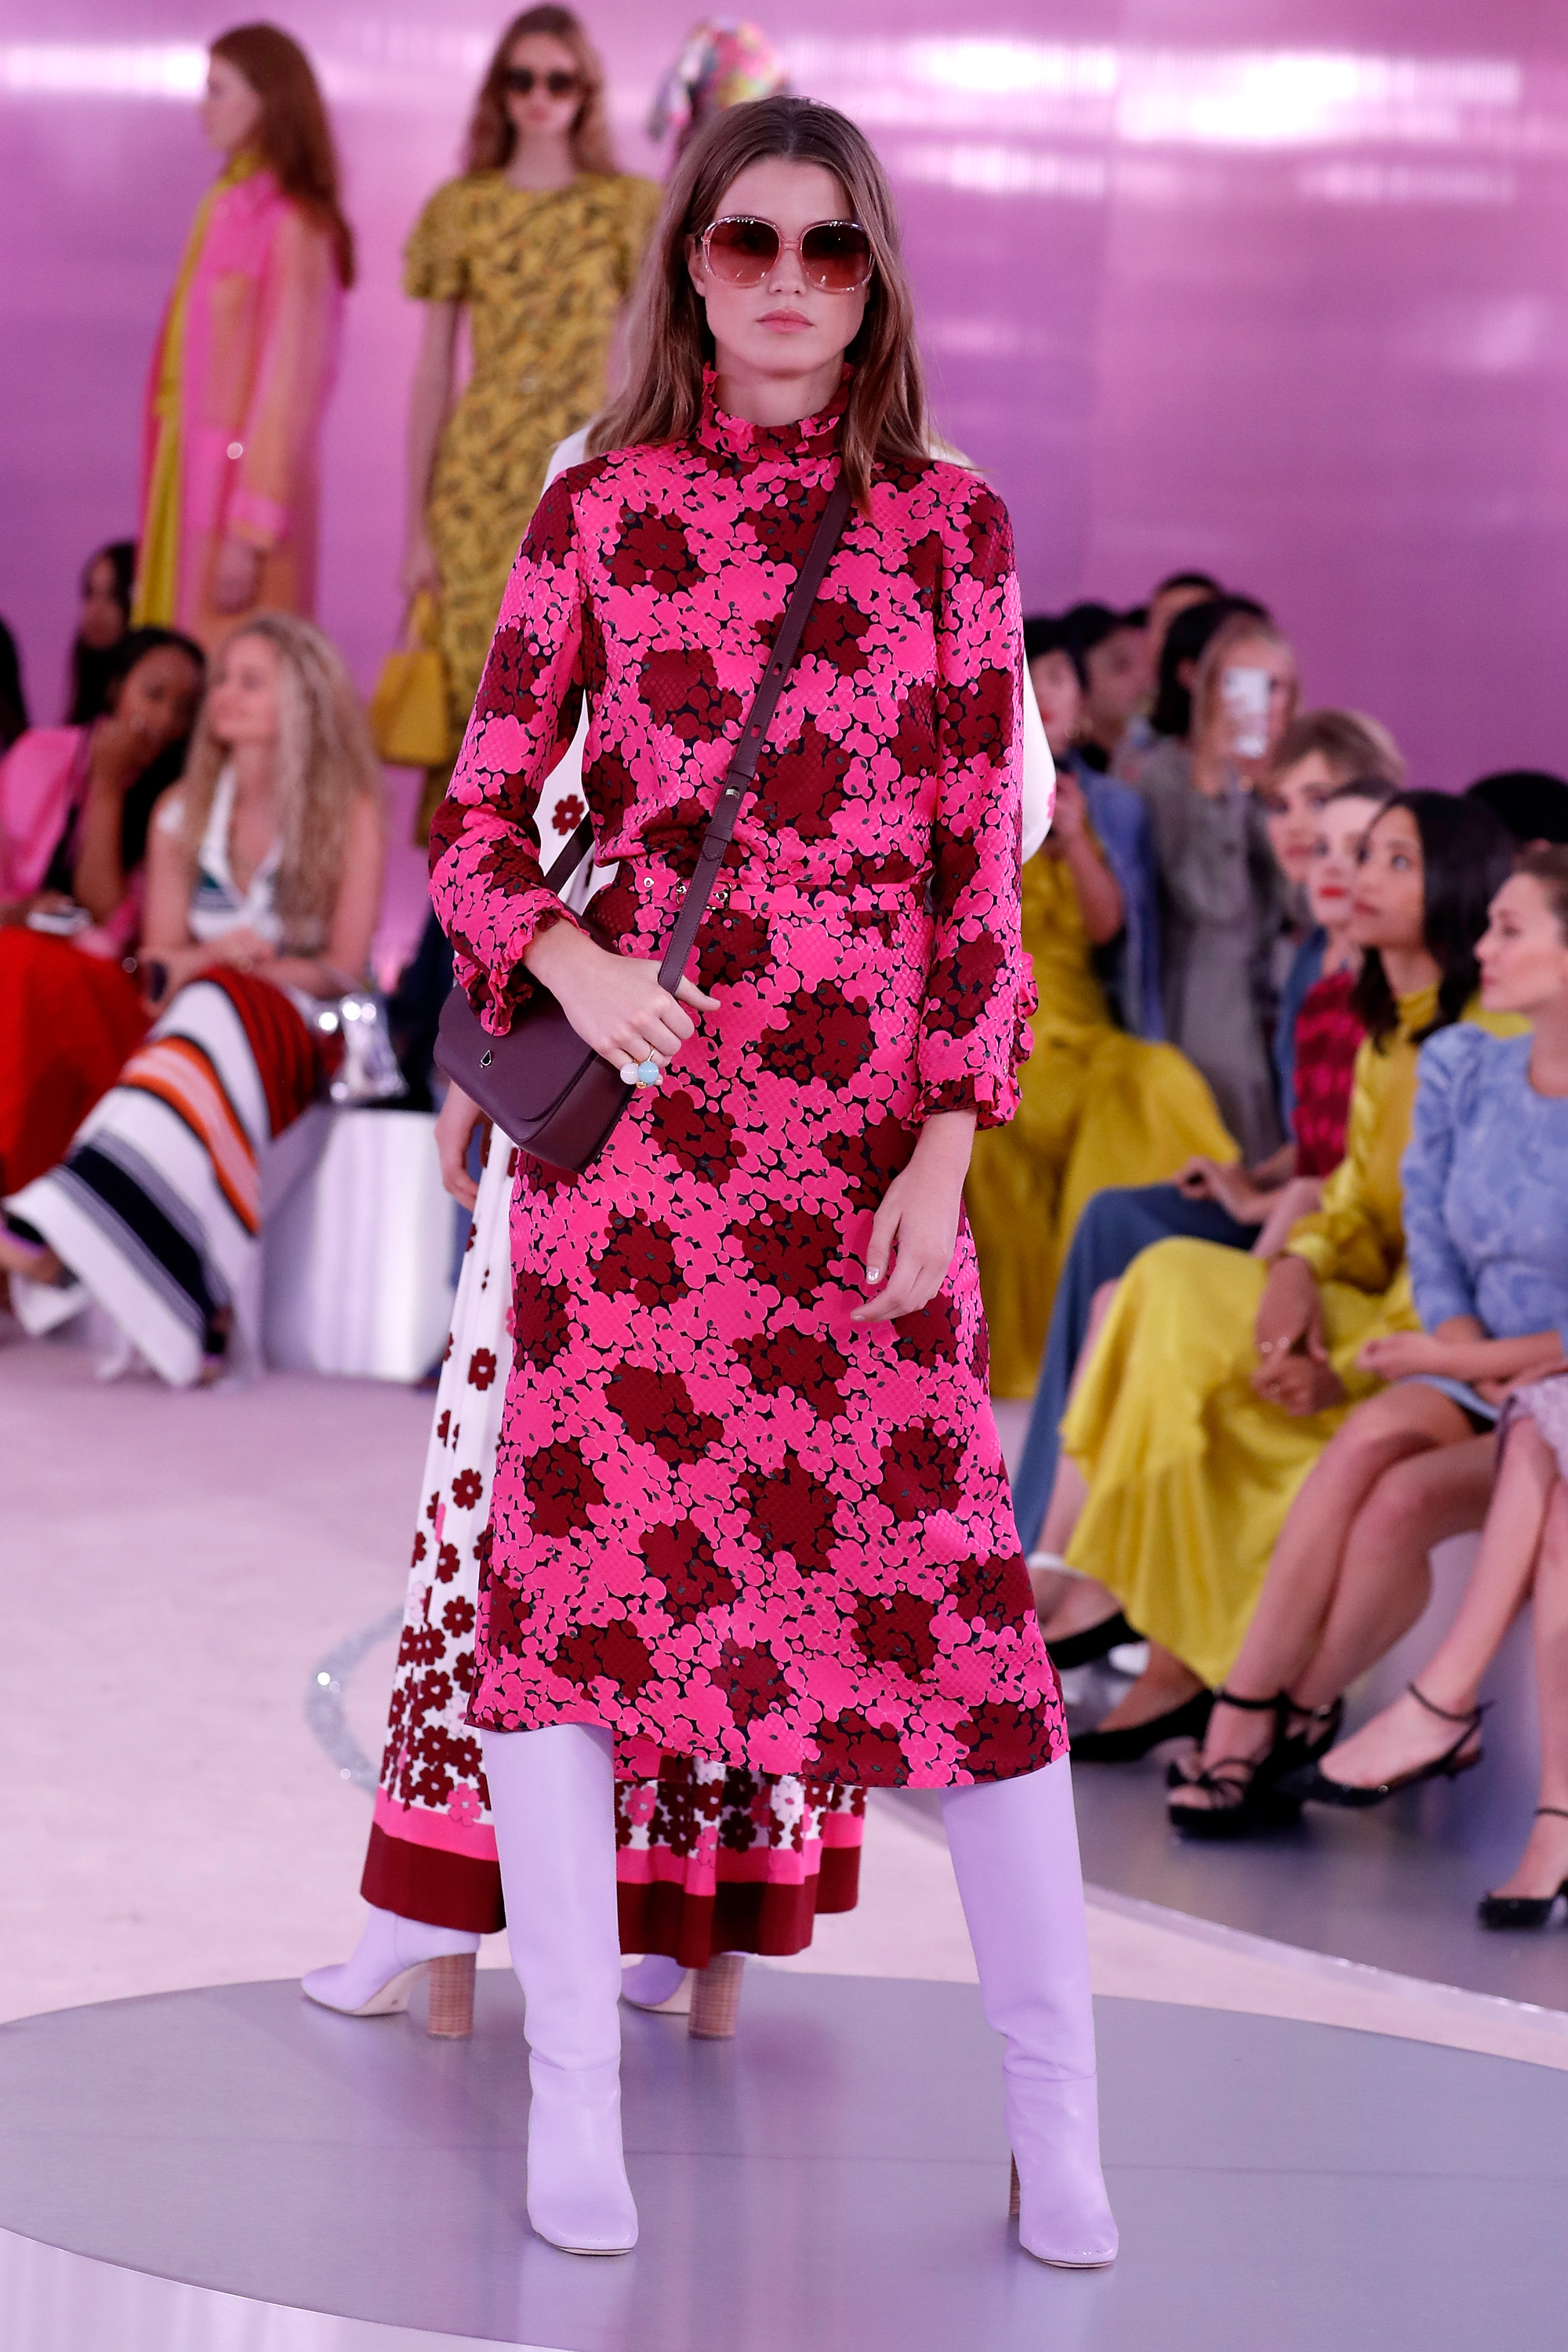 Kate Spade New York - Presentation - September 2018 - New York Fashion Week